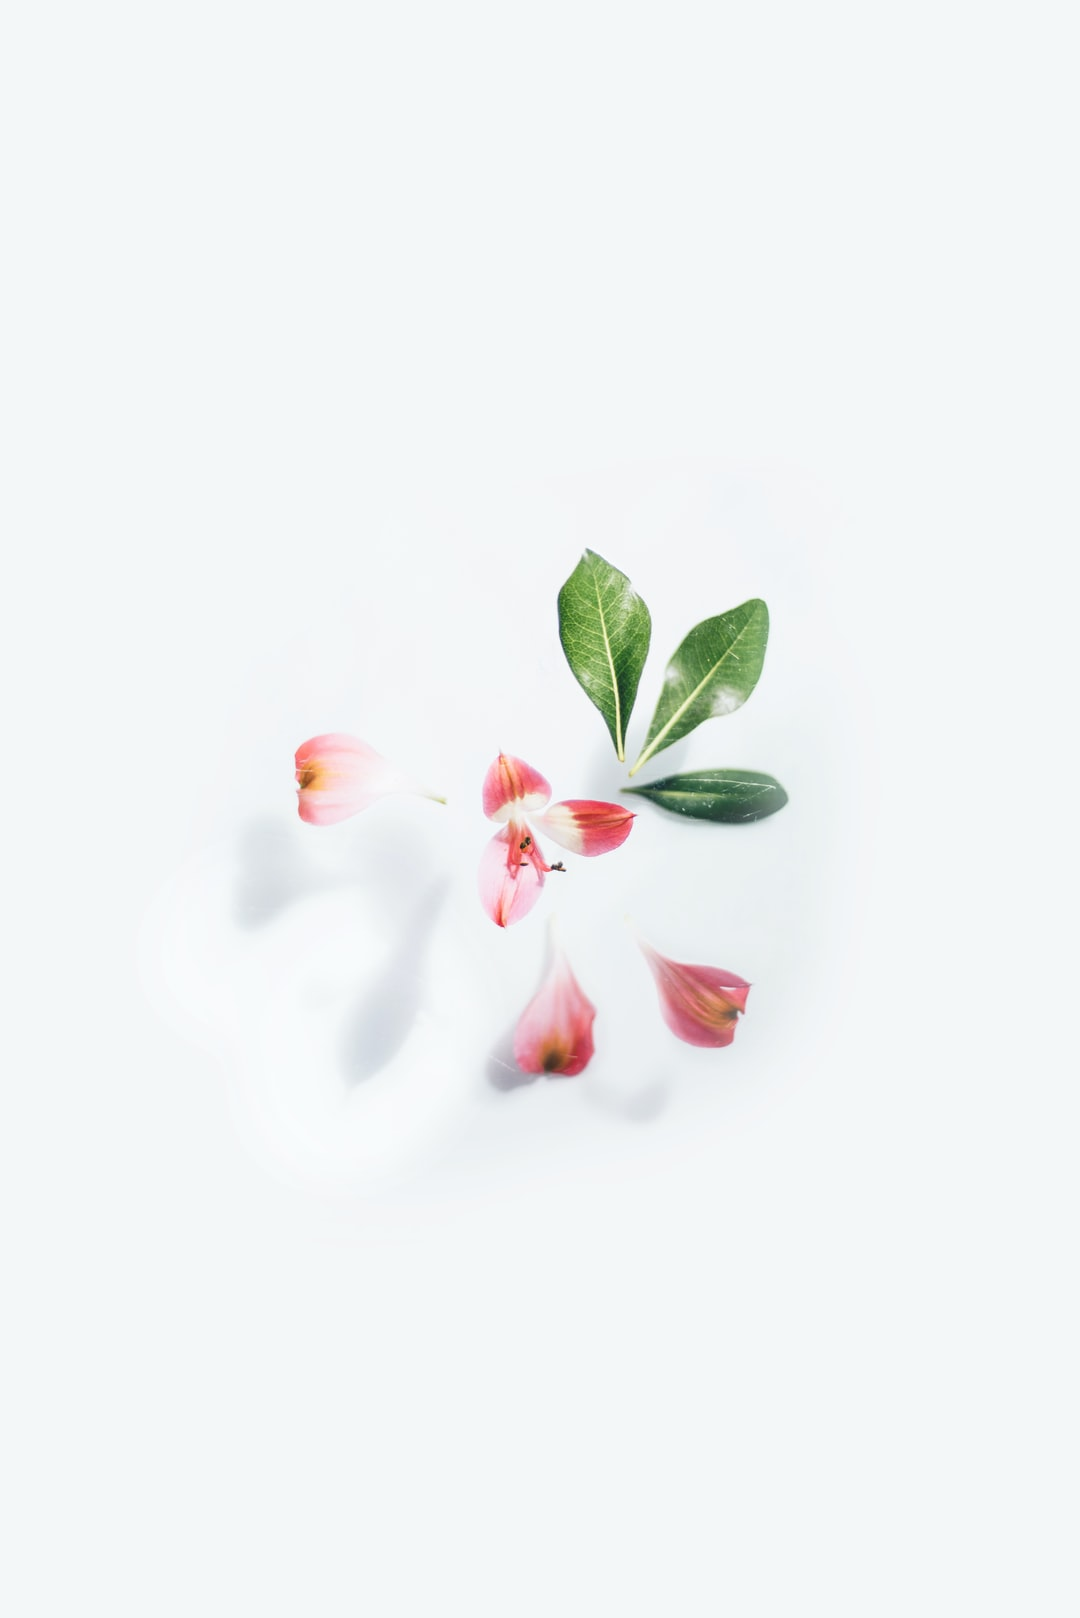 Deconstructed flower on white background